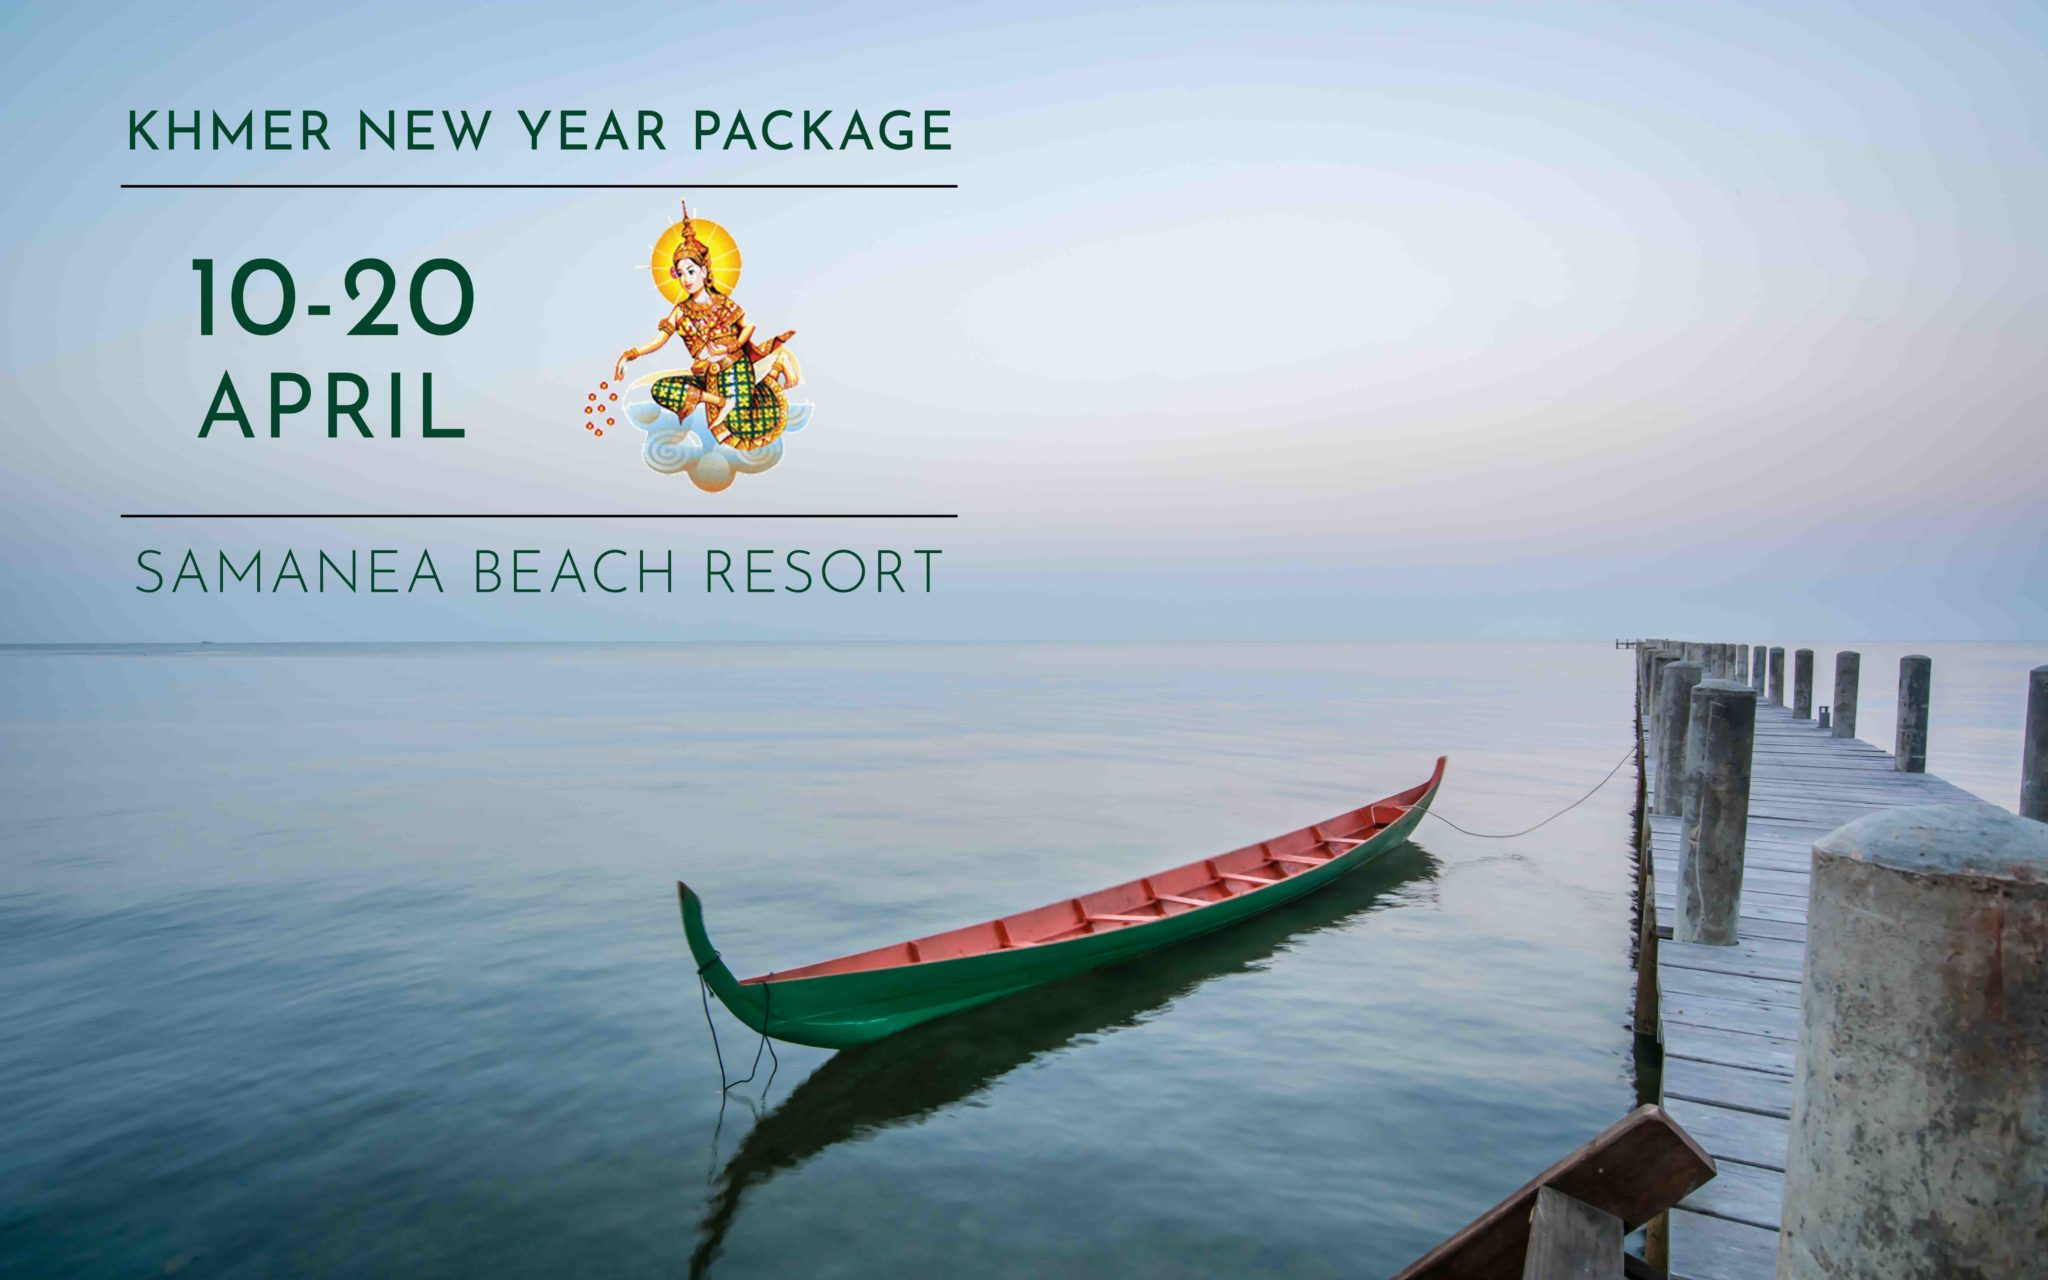 Khmer new year package promotion